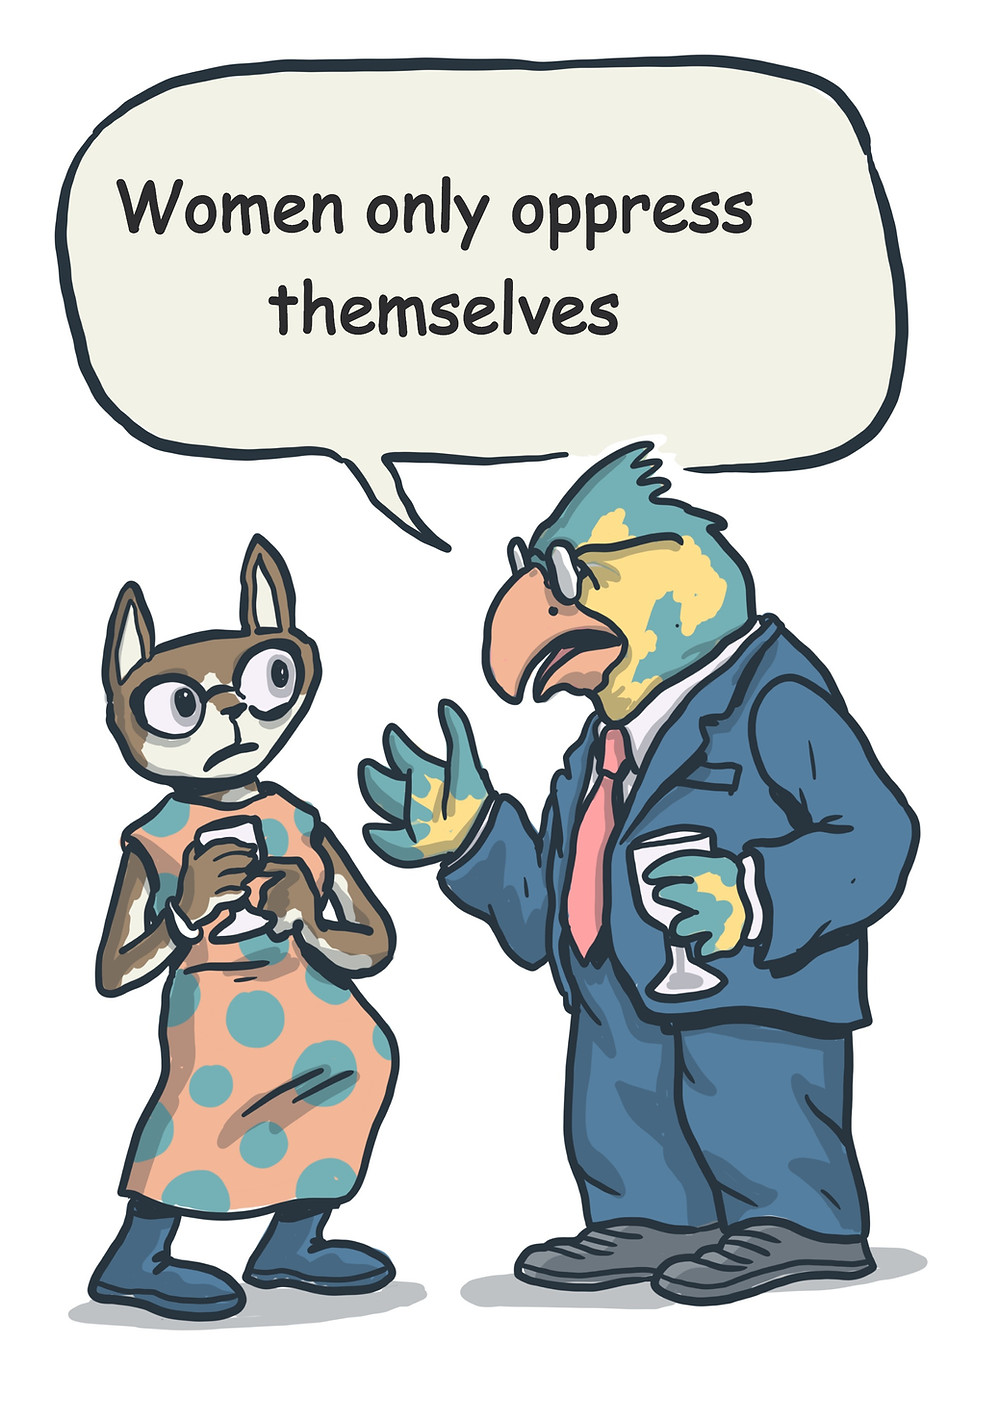 A picture of a scared cat in a dress and an important parrot in suit and glasses talking down to her